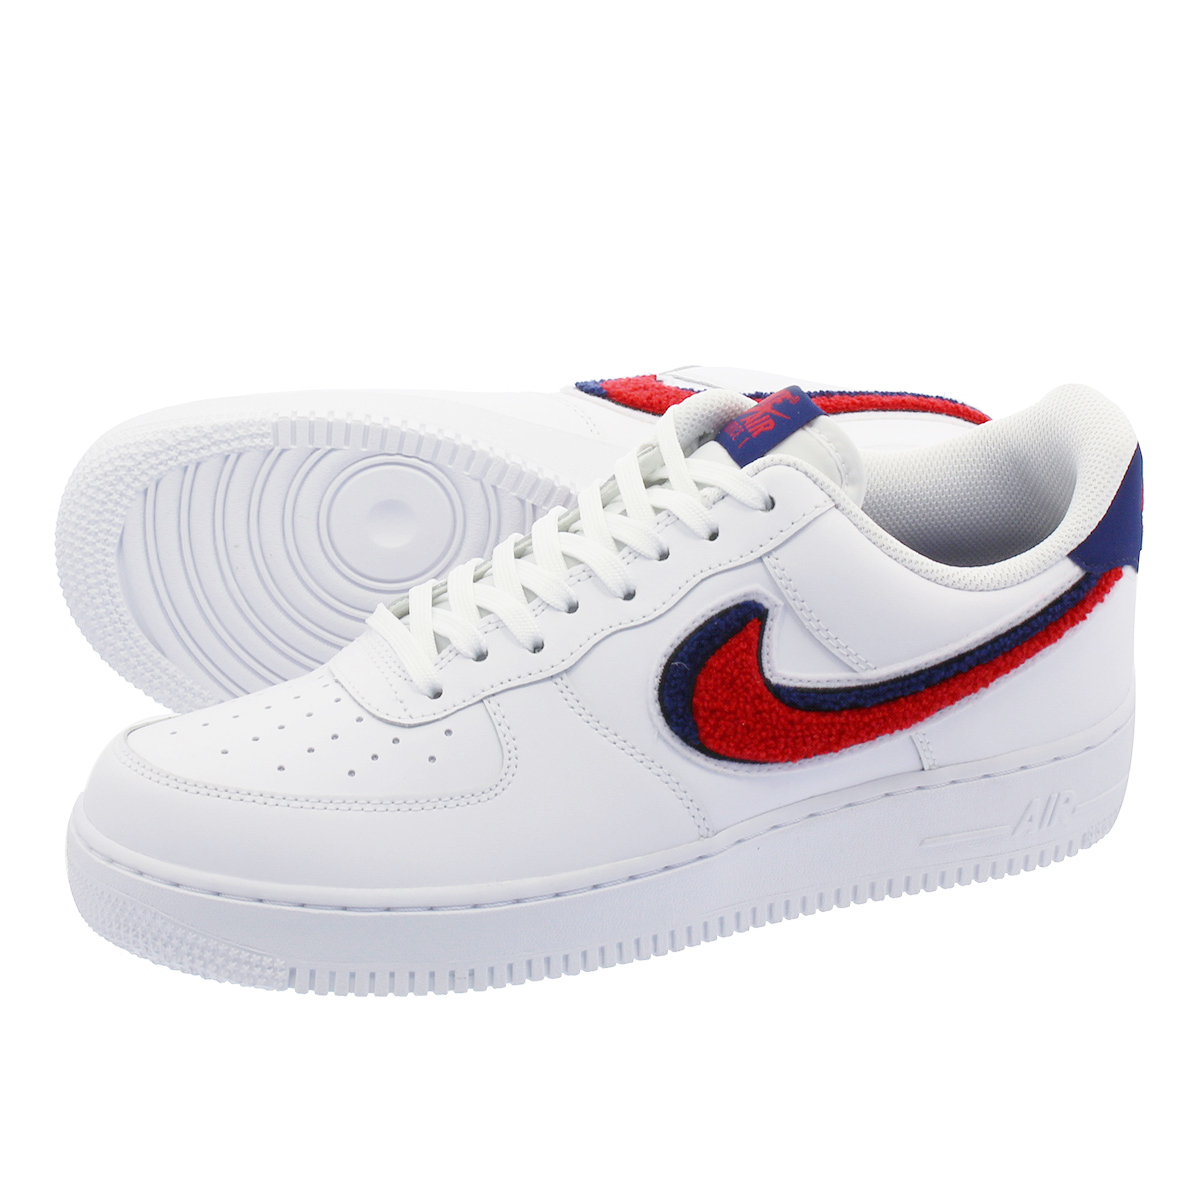 507a6117c54 LOWTEX PLUS: NIKE AIR FORCE 1 '07 LV8 Nike air force 1 '07 LV8 WHITE ...